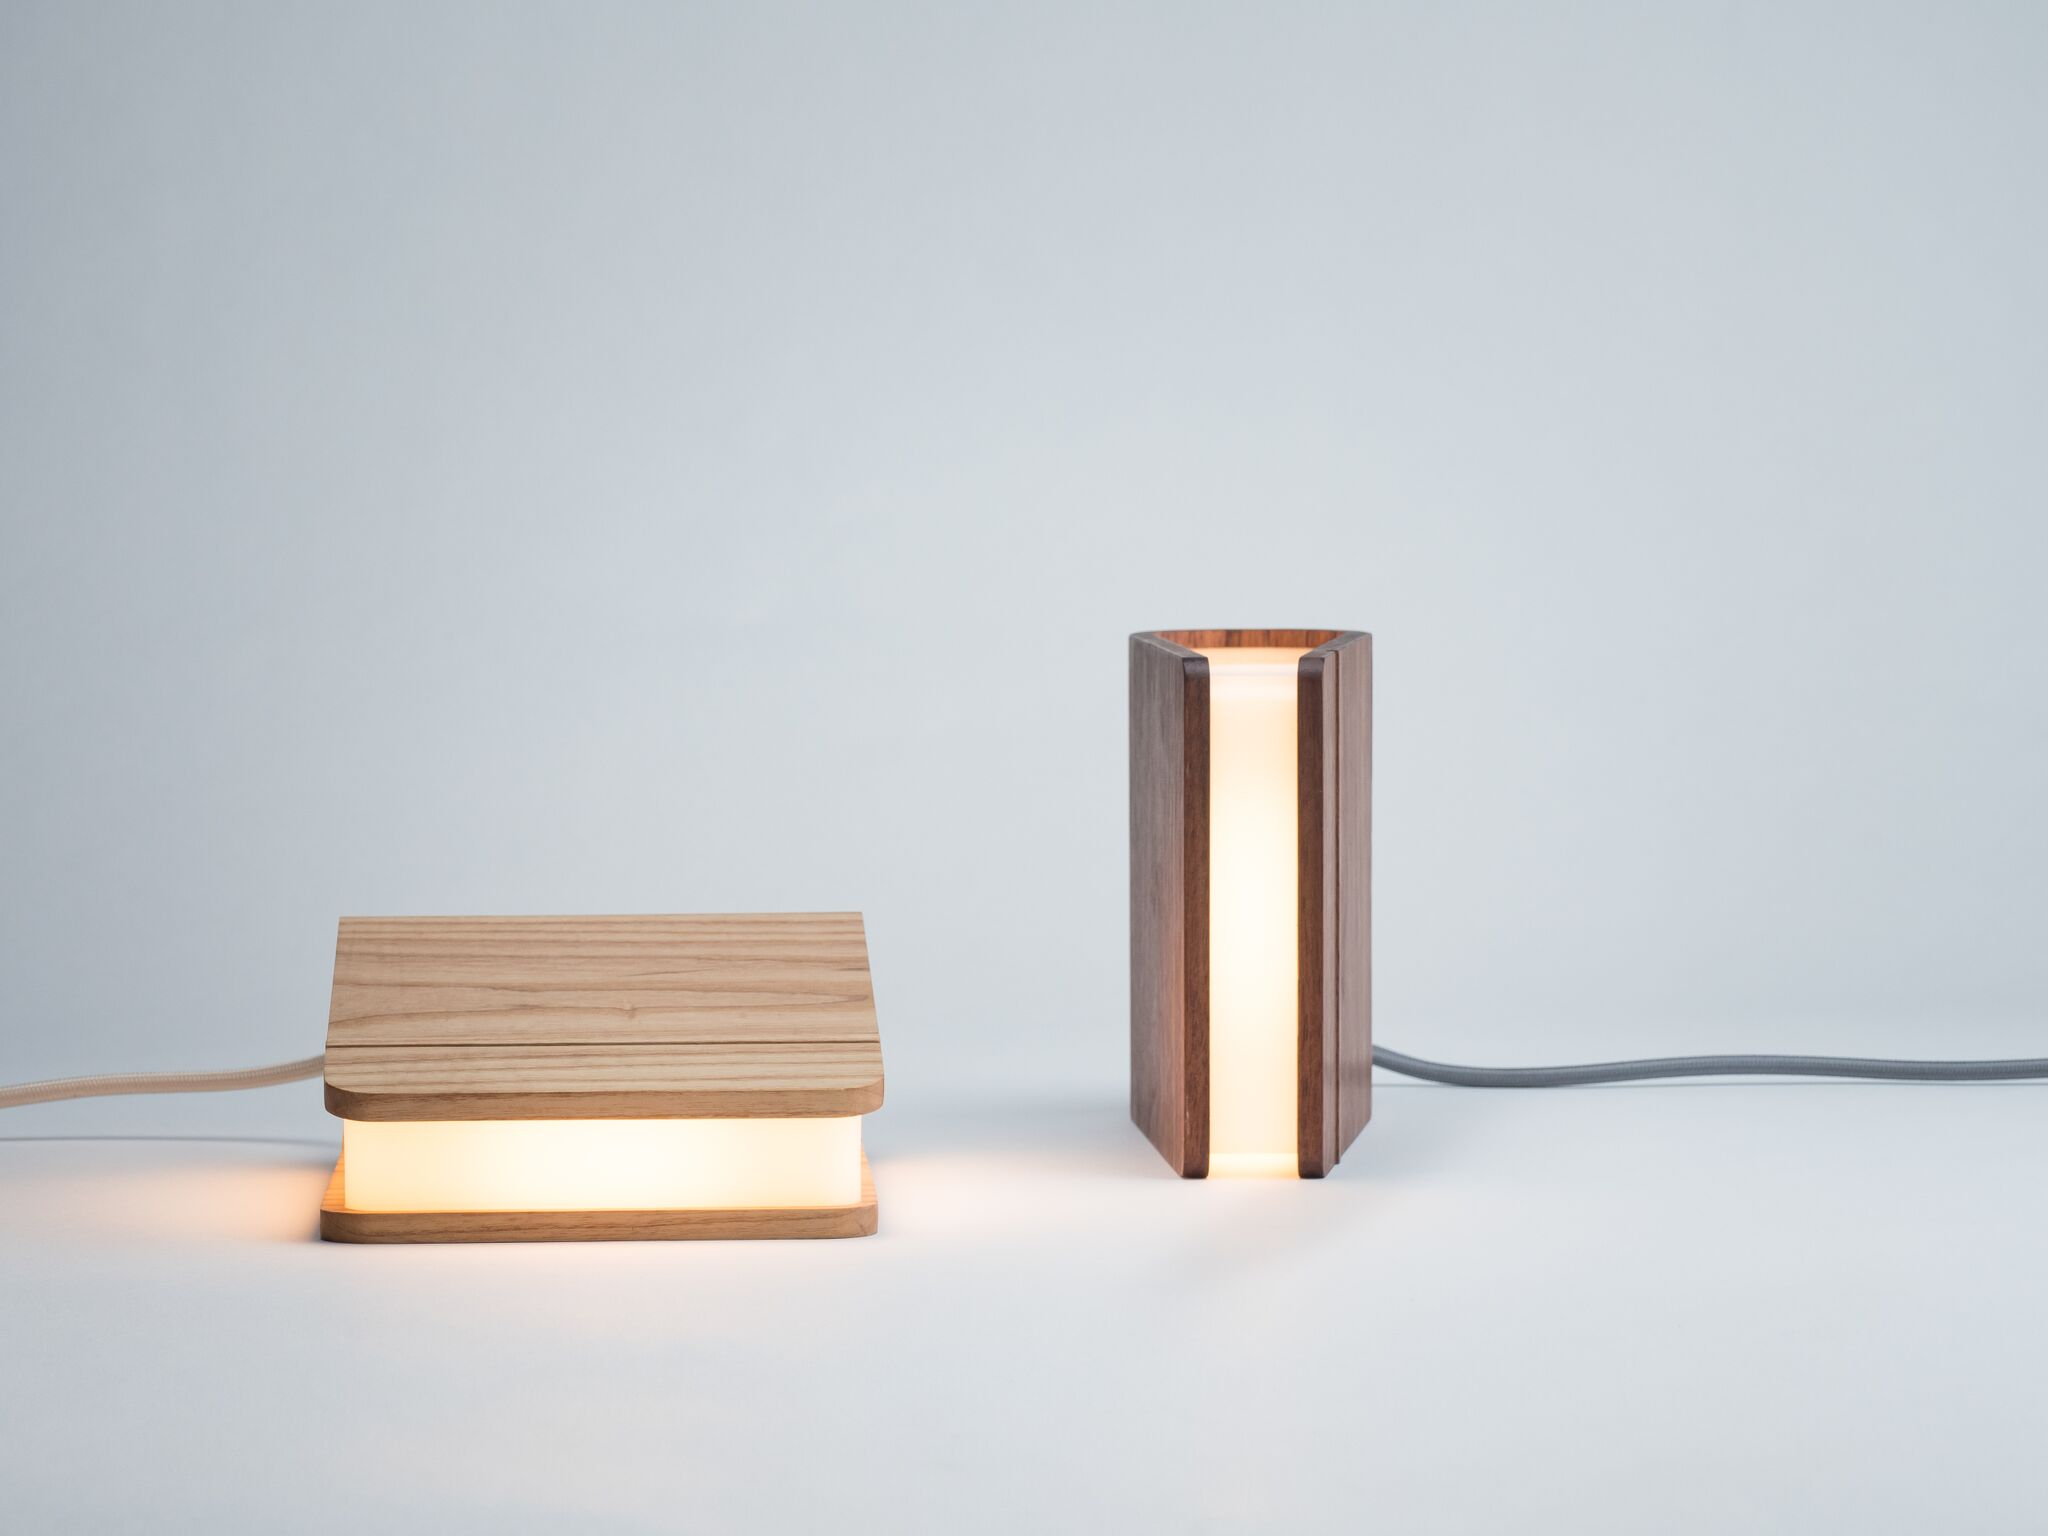 emmet-wooden-led-lamp-2.jpg